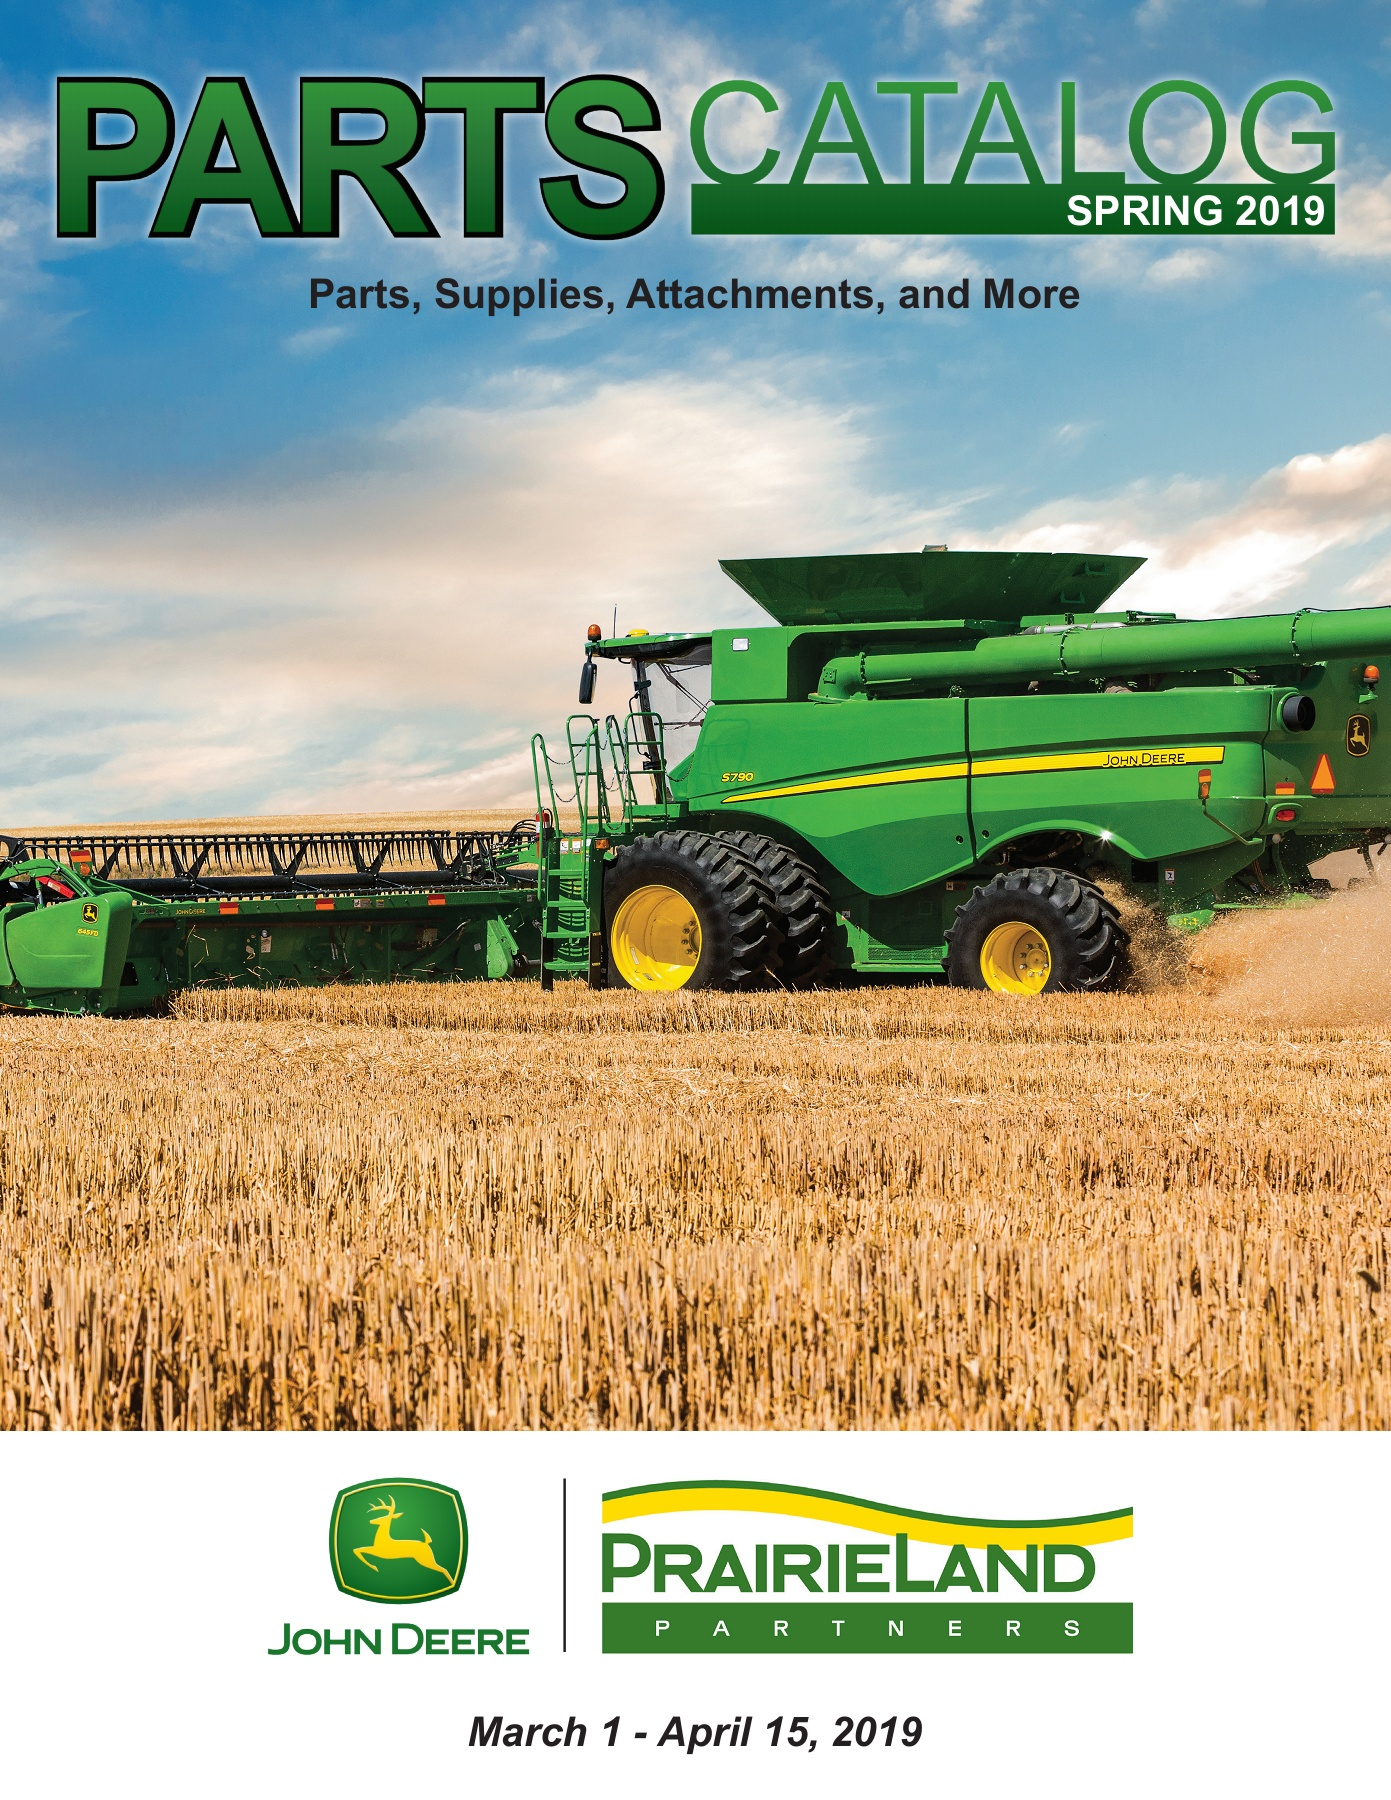 Spring Parts Catalog 2019 Pages 1 - 48 - Text Version | AnyFlip